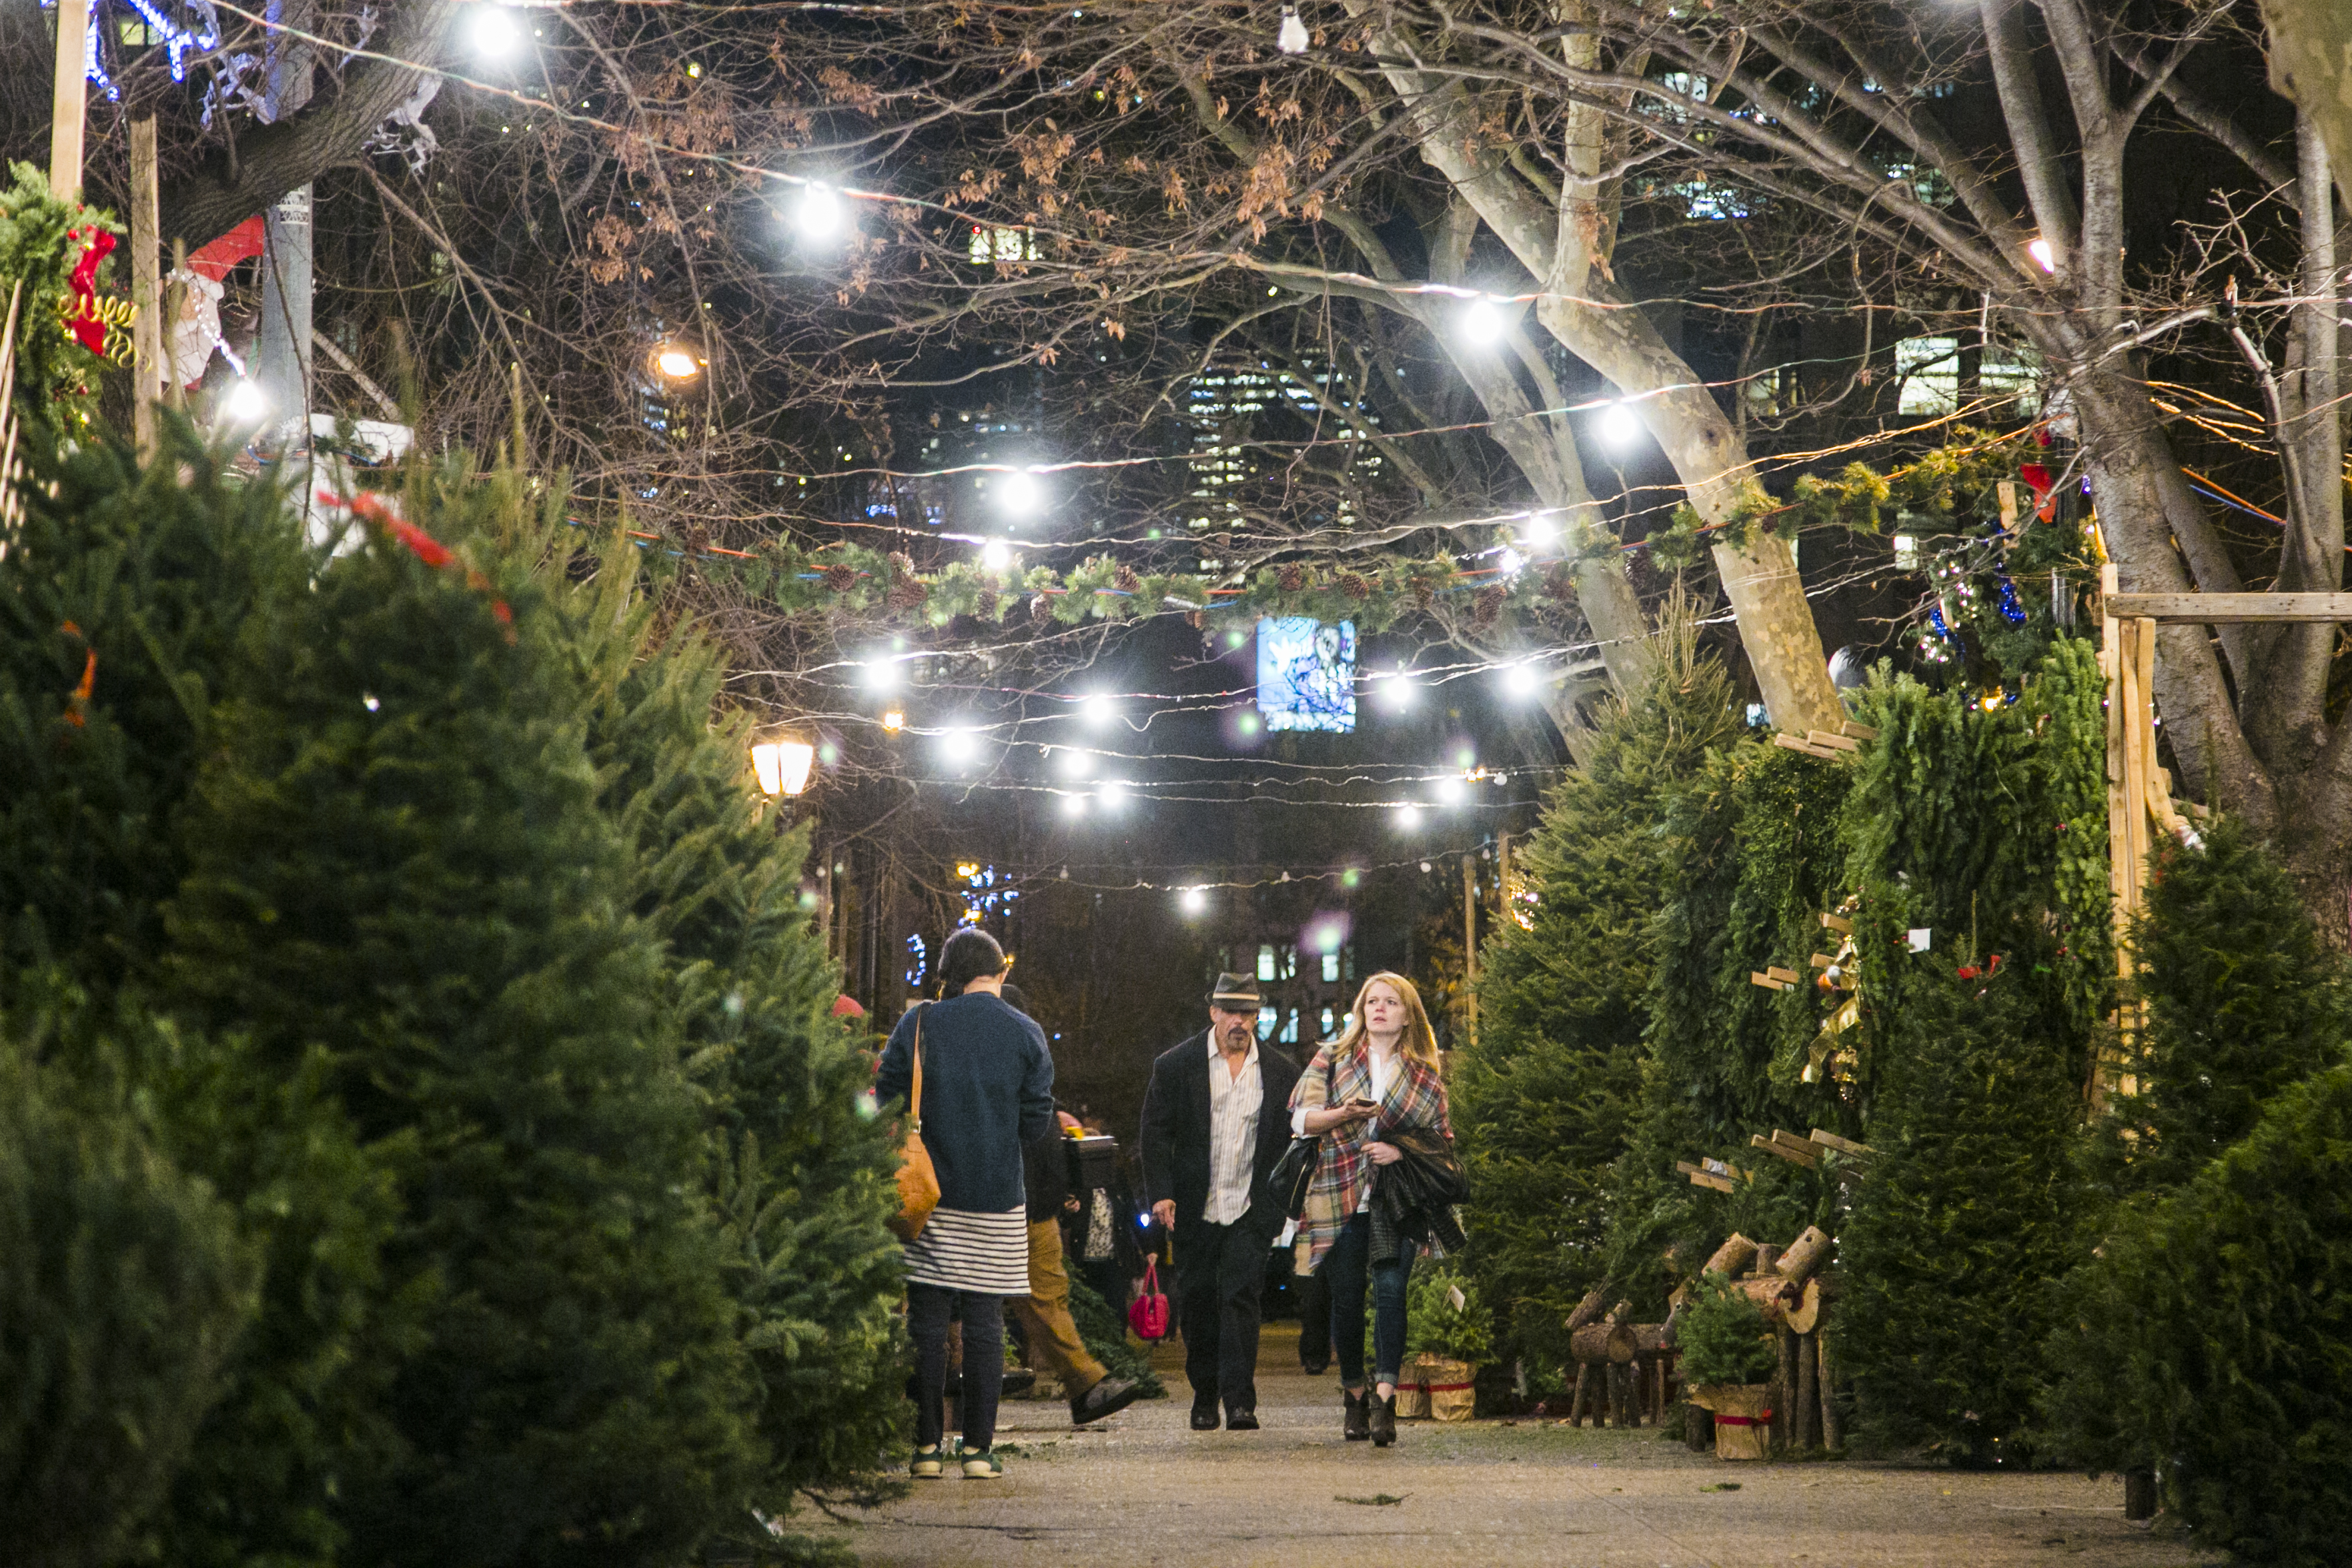 A Peek Behind the Curtain at New York's Christmas Tree Trade ...